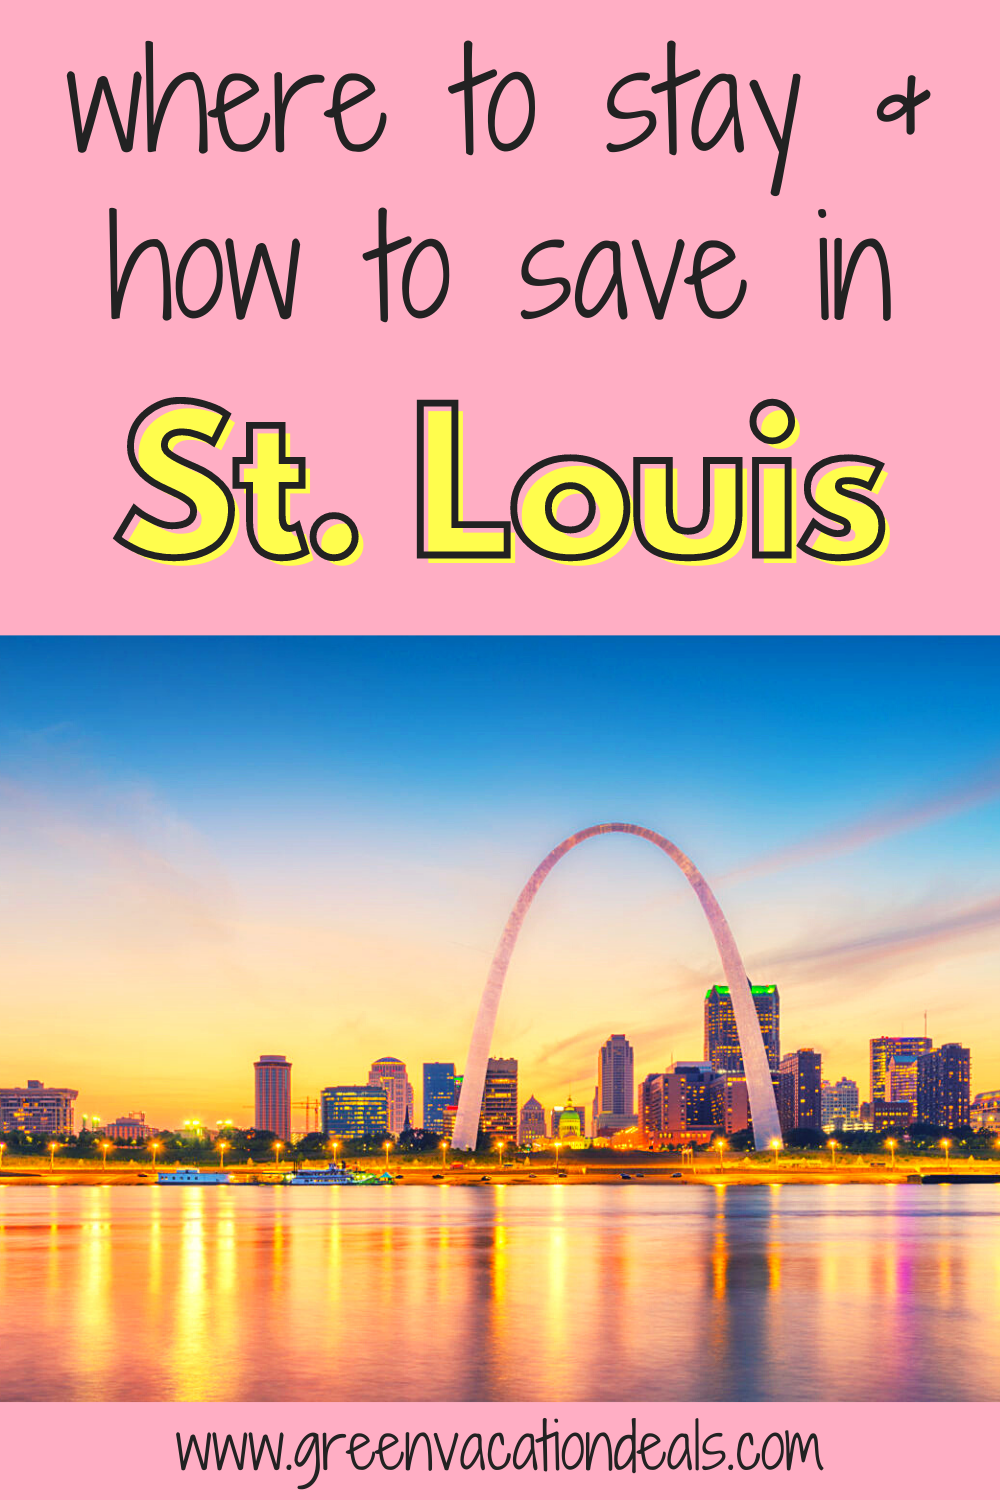 St. Louis, Missouri travel guide. You can learn of activities (gardens, Archway, walking history & downtown food tour, etc.). Plus, find out how to save up to 59% on hotel rates. Great for deciding where to stay in St. Louis. #StLouis #SaintLouis #Missouri #HotelDeals #TravelDeals #Travelsale #hotelsale #travelhacks #DowntownStLouis #Midwesttravel #budgettravel #budgettraveler #budgetvacation #MarkTwain #foodie